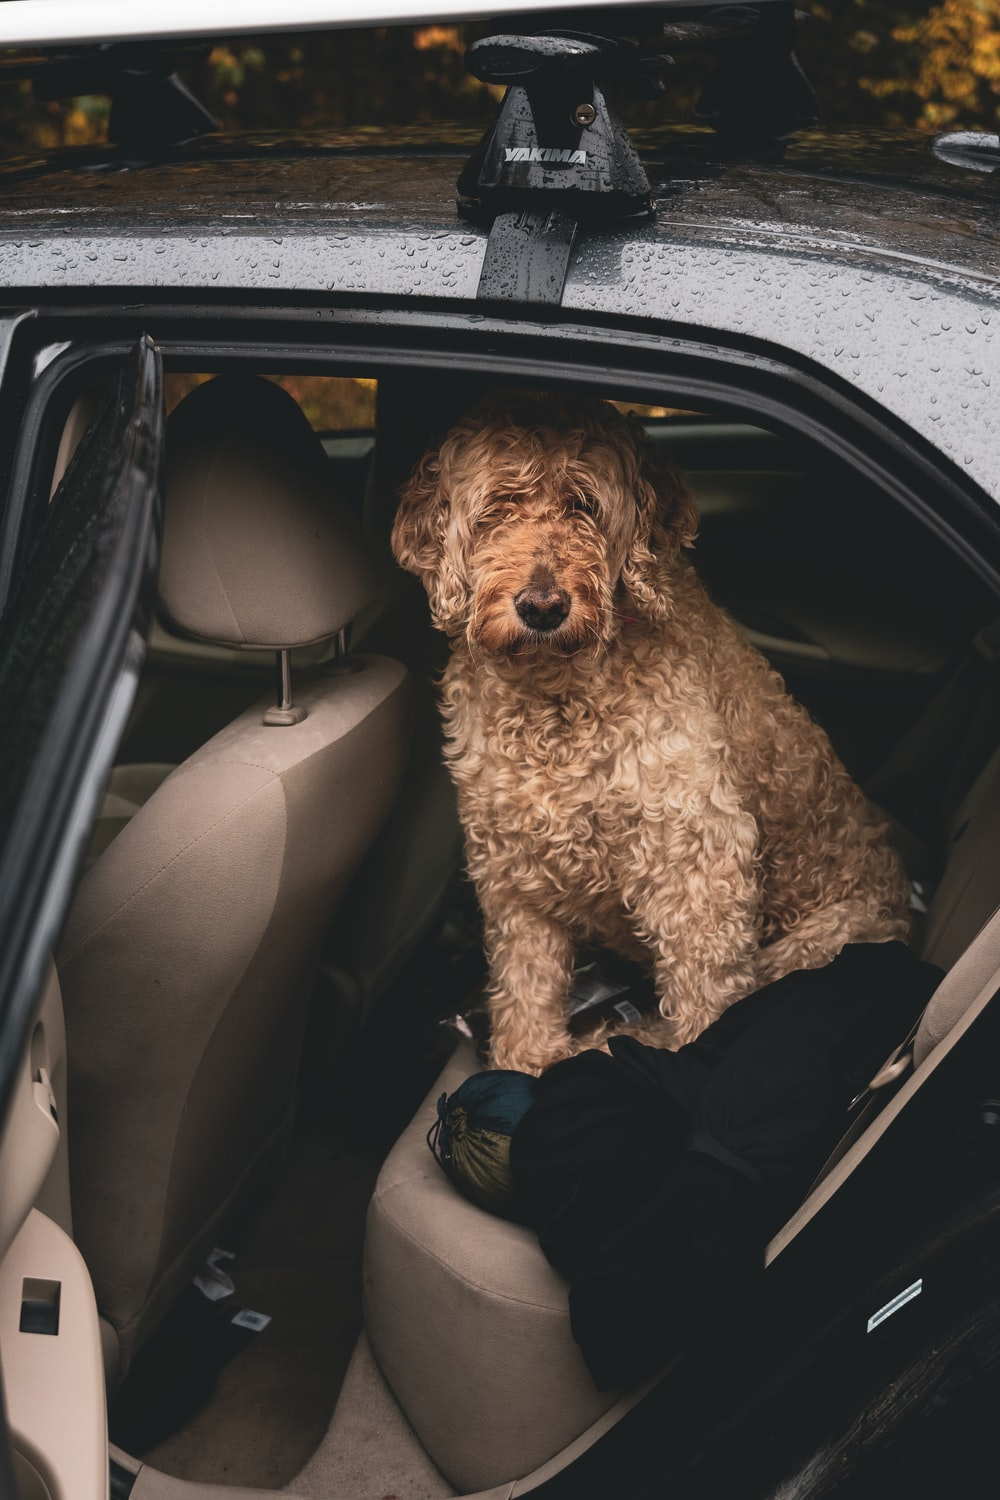 curly-haired brown dog inside vehicle